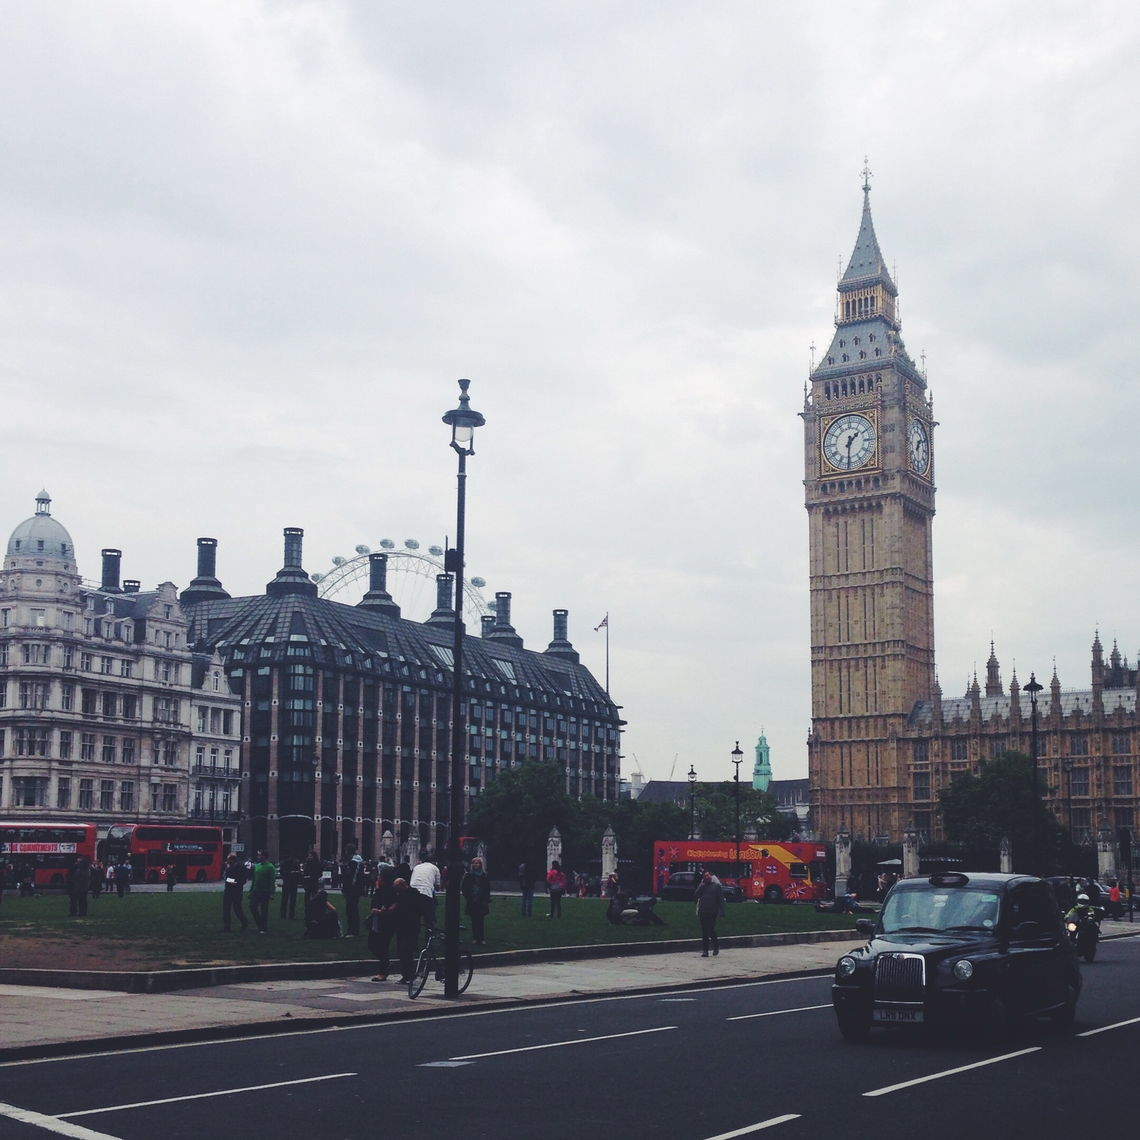 From left, Parliament, Big Ben and Westminster Abbey can be viewed from this street corner, with the top of the London Eye in the background, Europe's tallest Ferris wheel.